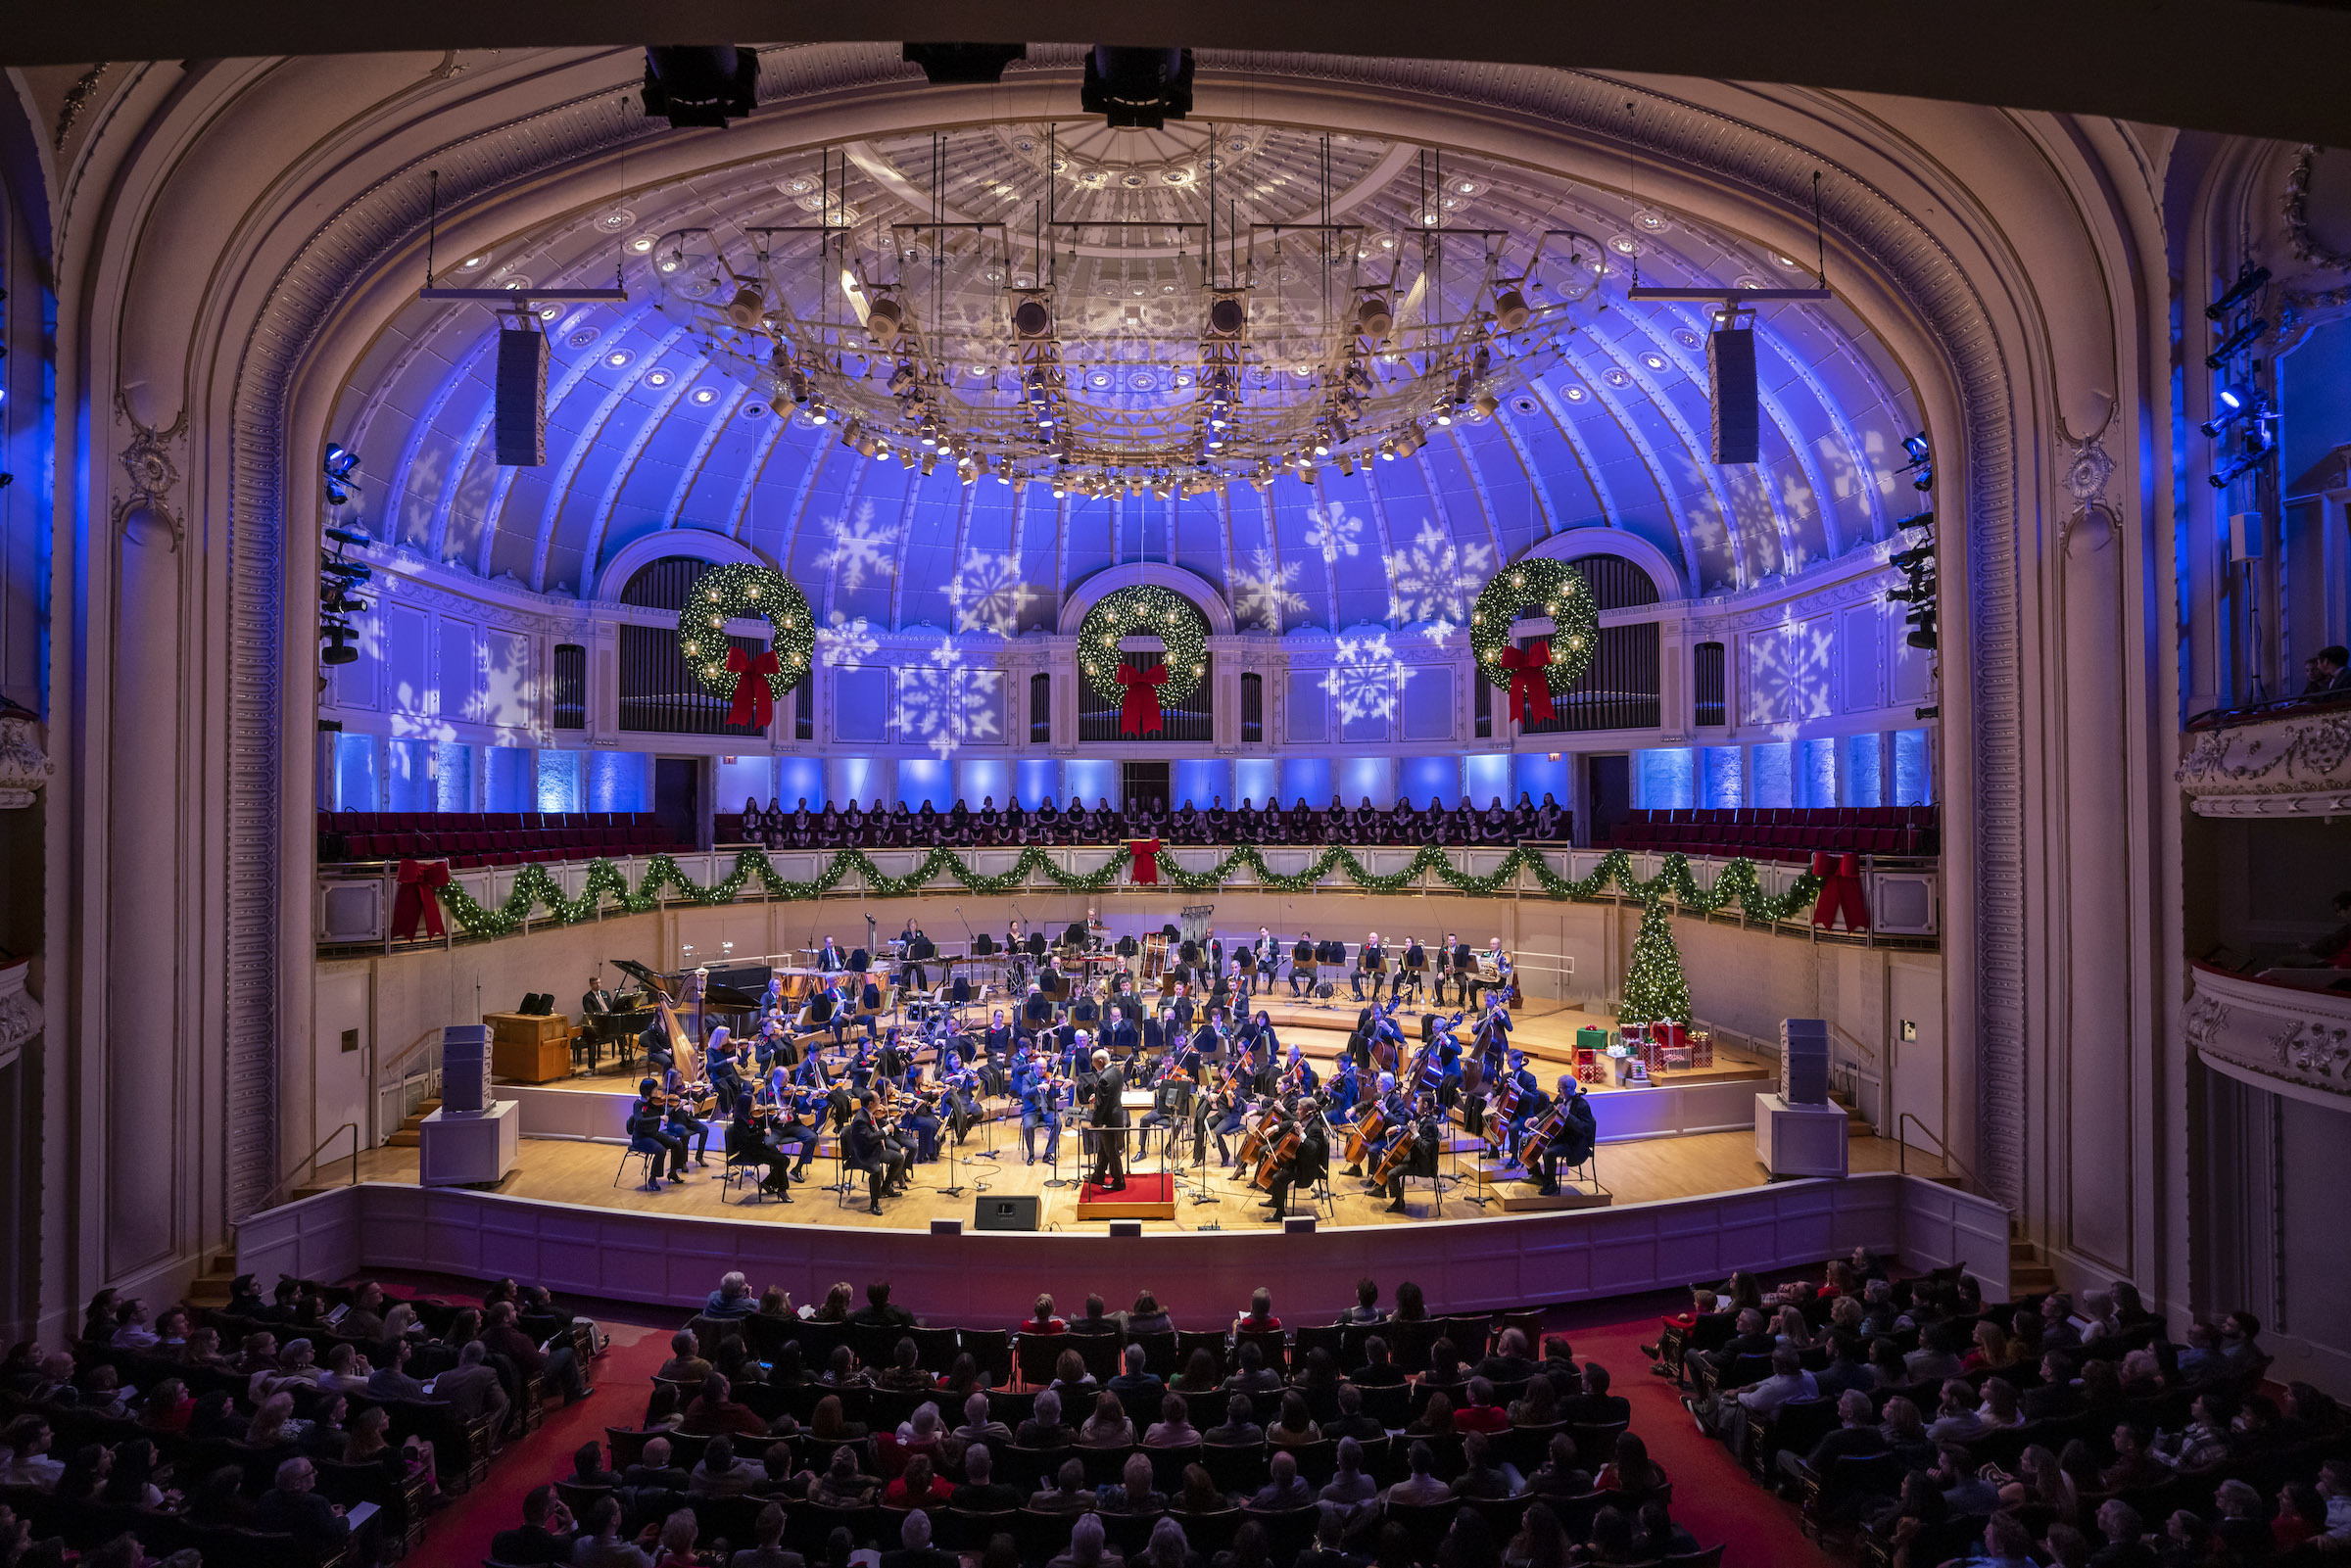 Get in the holiday spirit at Chicago's top Christmas concerts